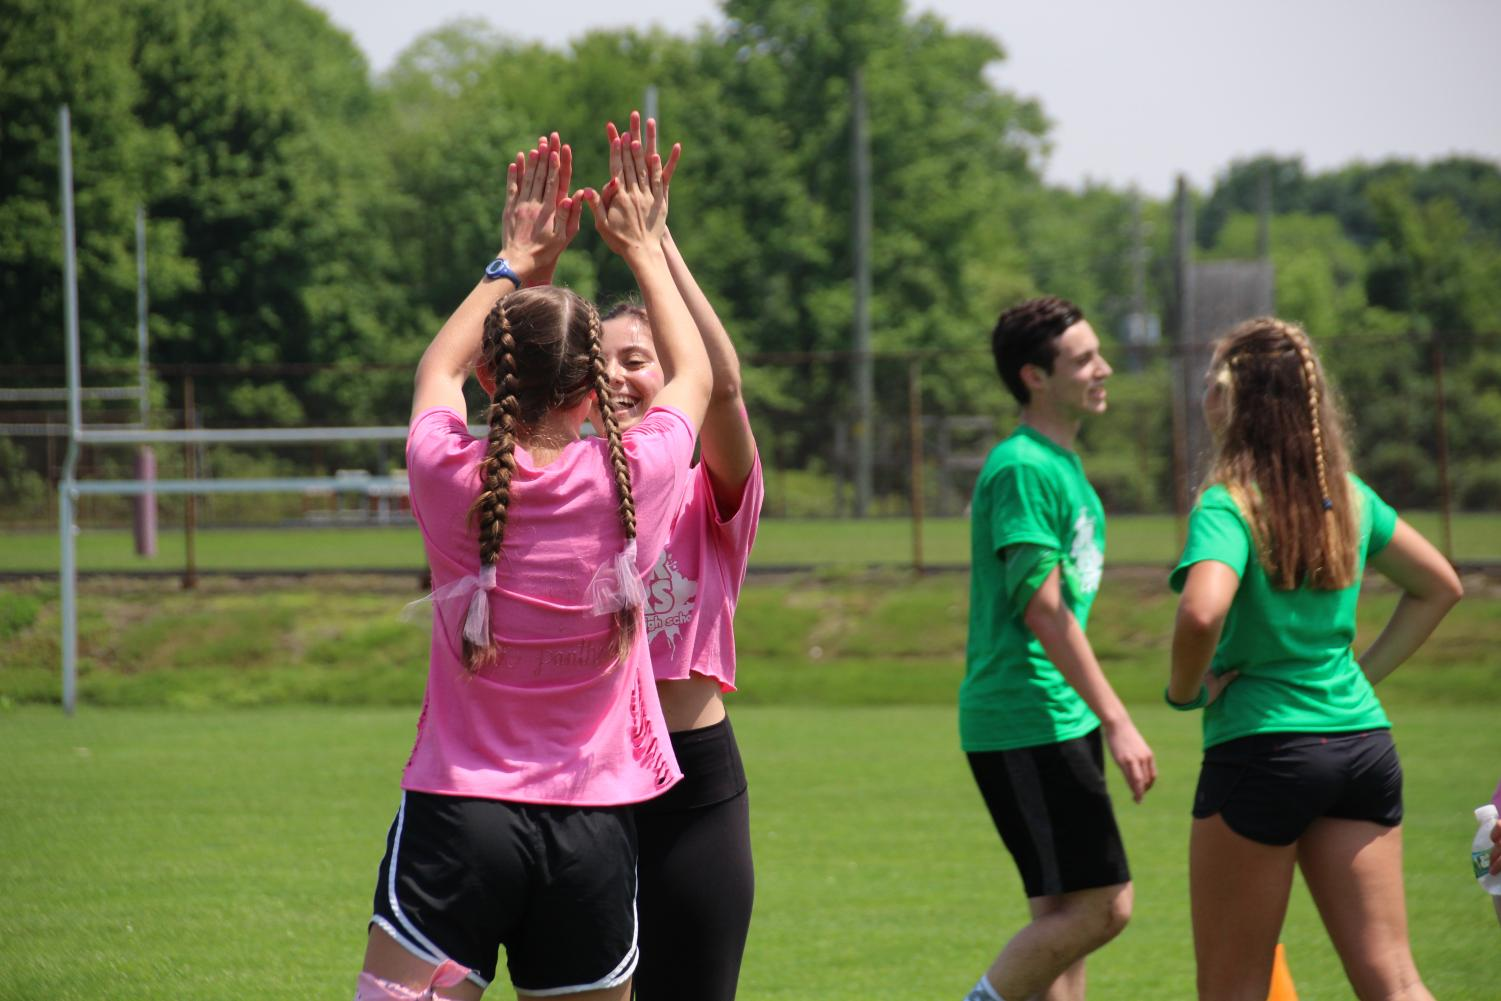 Pink+Team+captain+and+senior+Izzy+Cavazzoni+of+Wall+and+junior+Erica+Sammarco+of+Colts+Neck+high+five+after+a+victory+in+soccer.+The+Pink+Team+placed+third+overall+in+the+event.